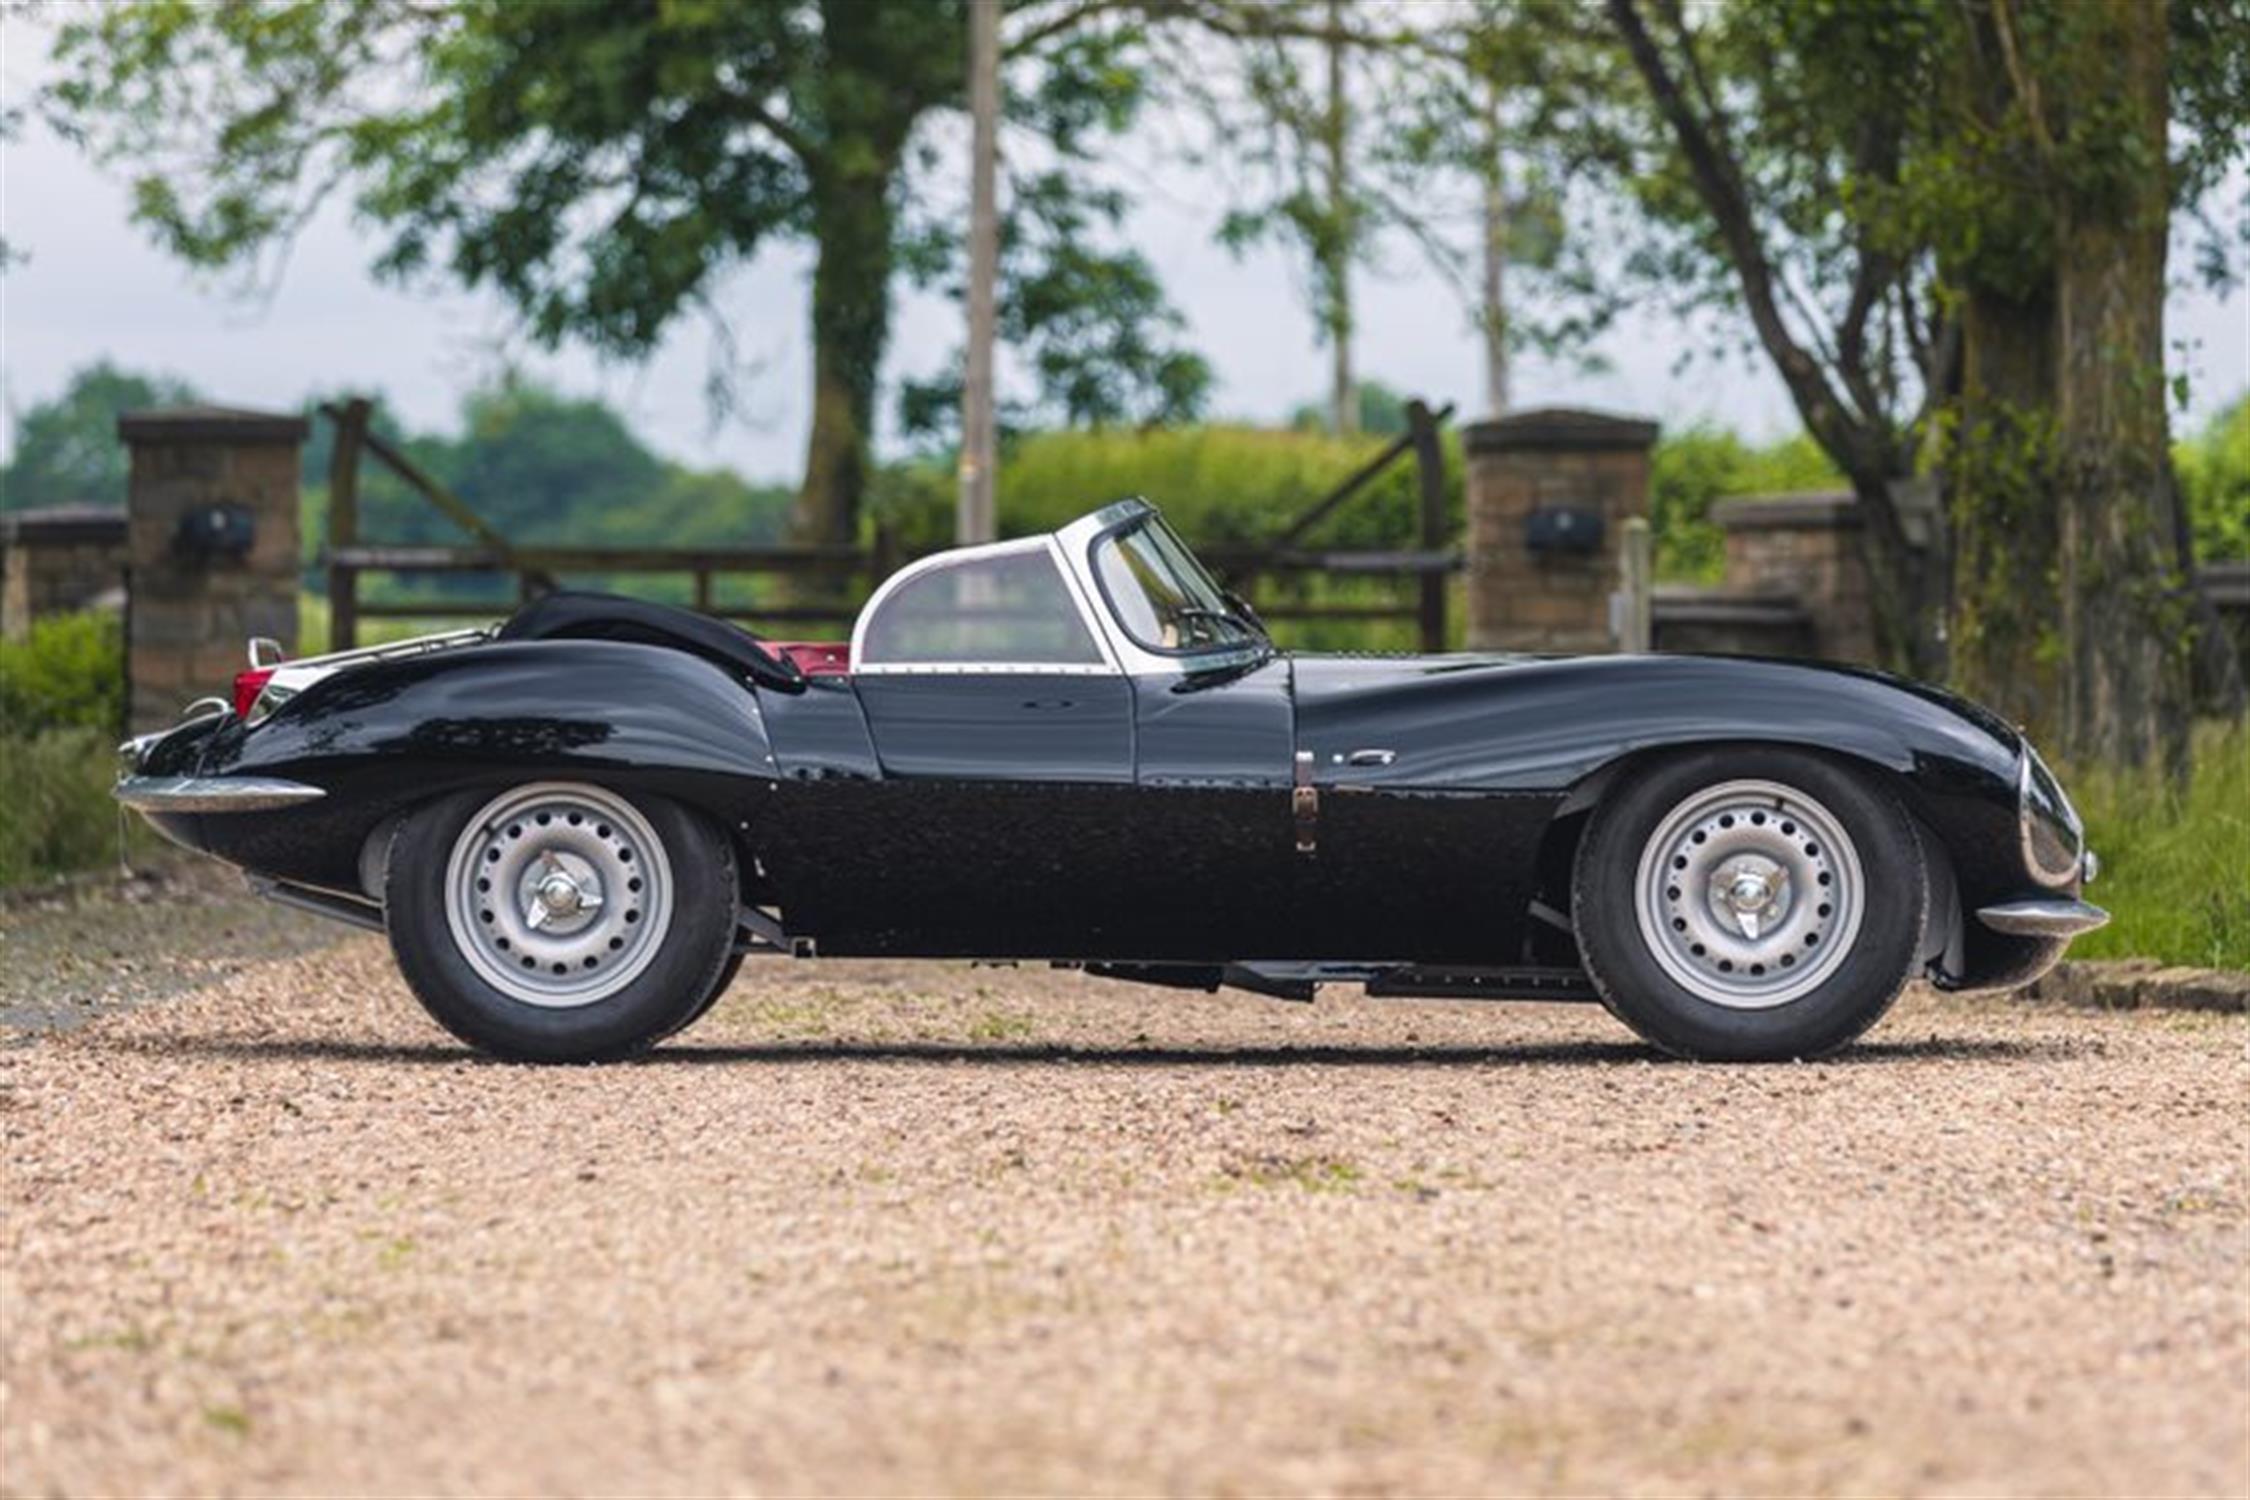 1967 XKSS Re-Creation - Image 5 of 10